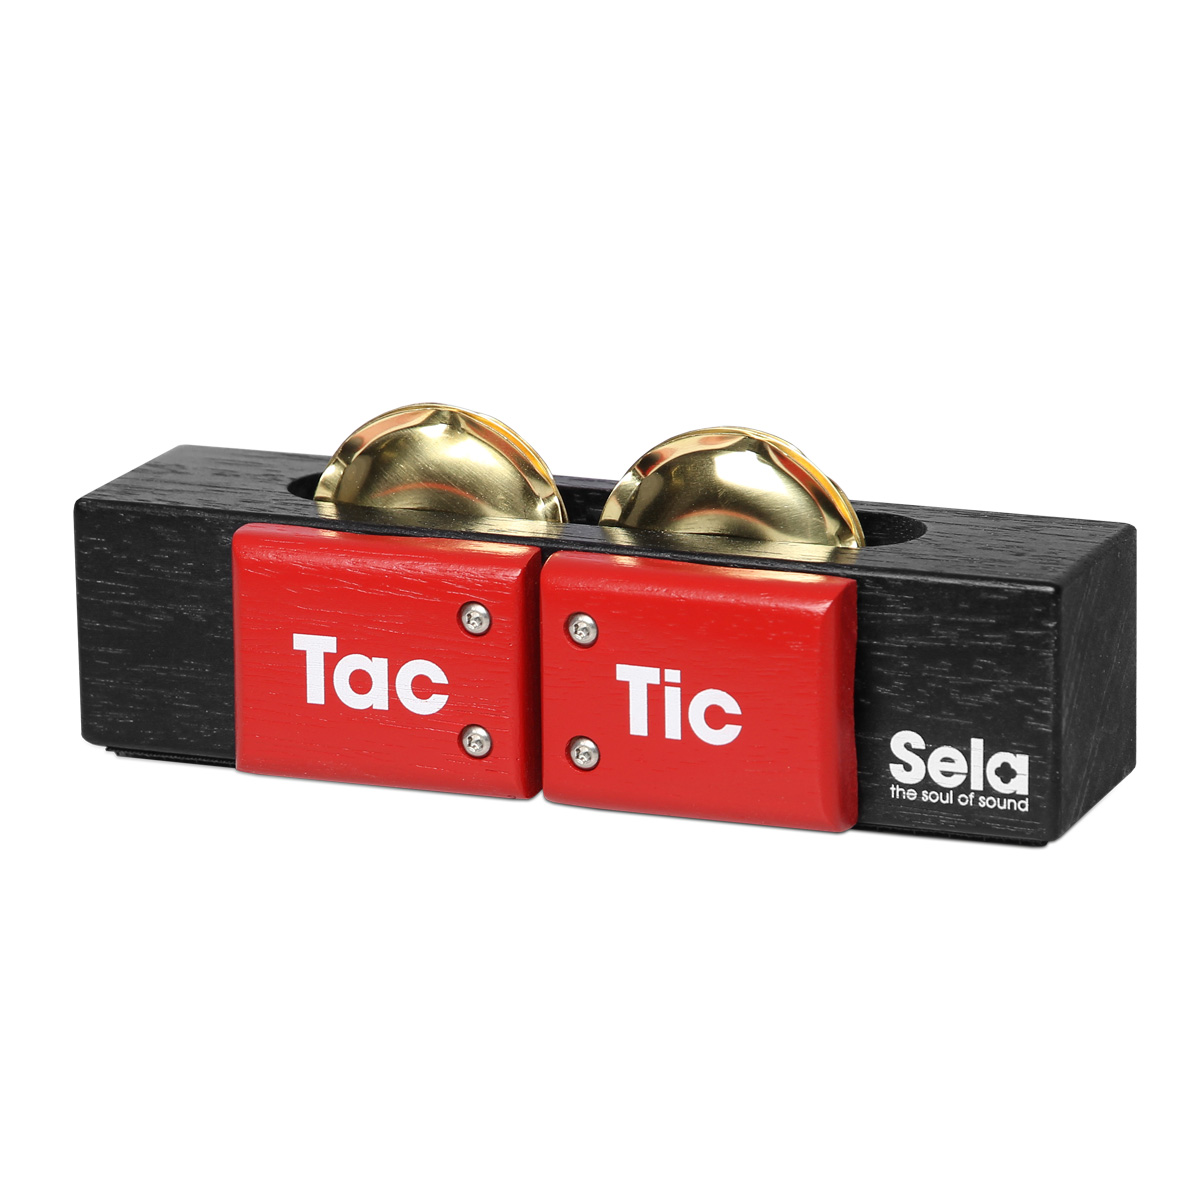 Sela Tac Tic 3 in 1 Multi Perkussion Instrument